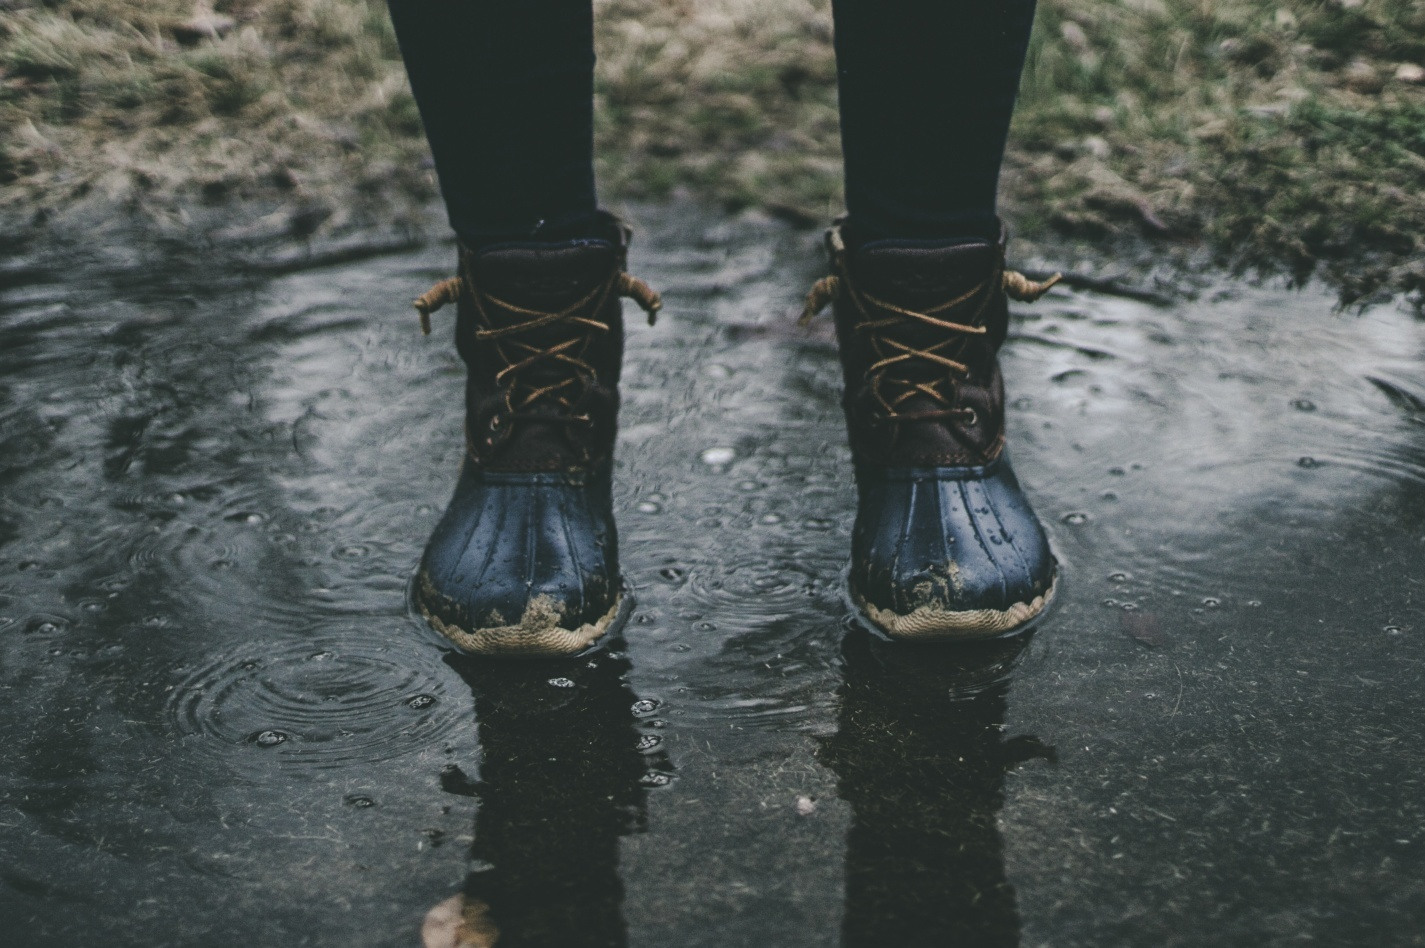 Close up on a person wearing wellington boots standing in a puddle